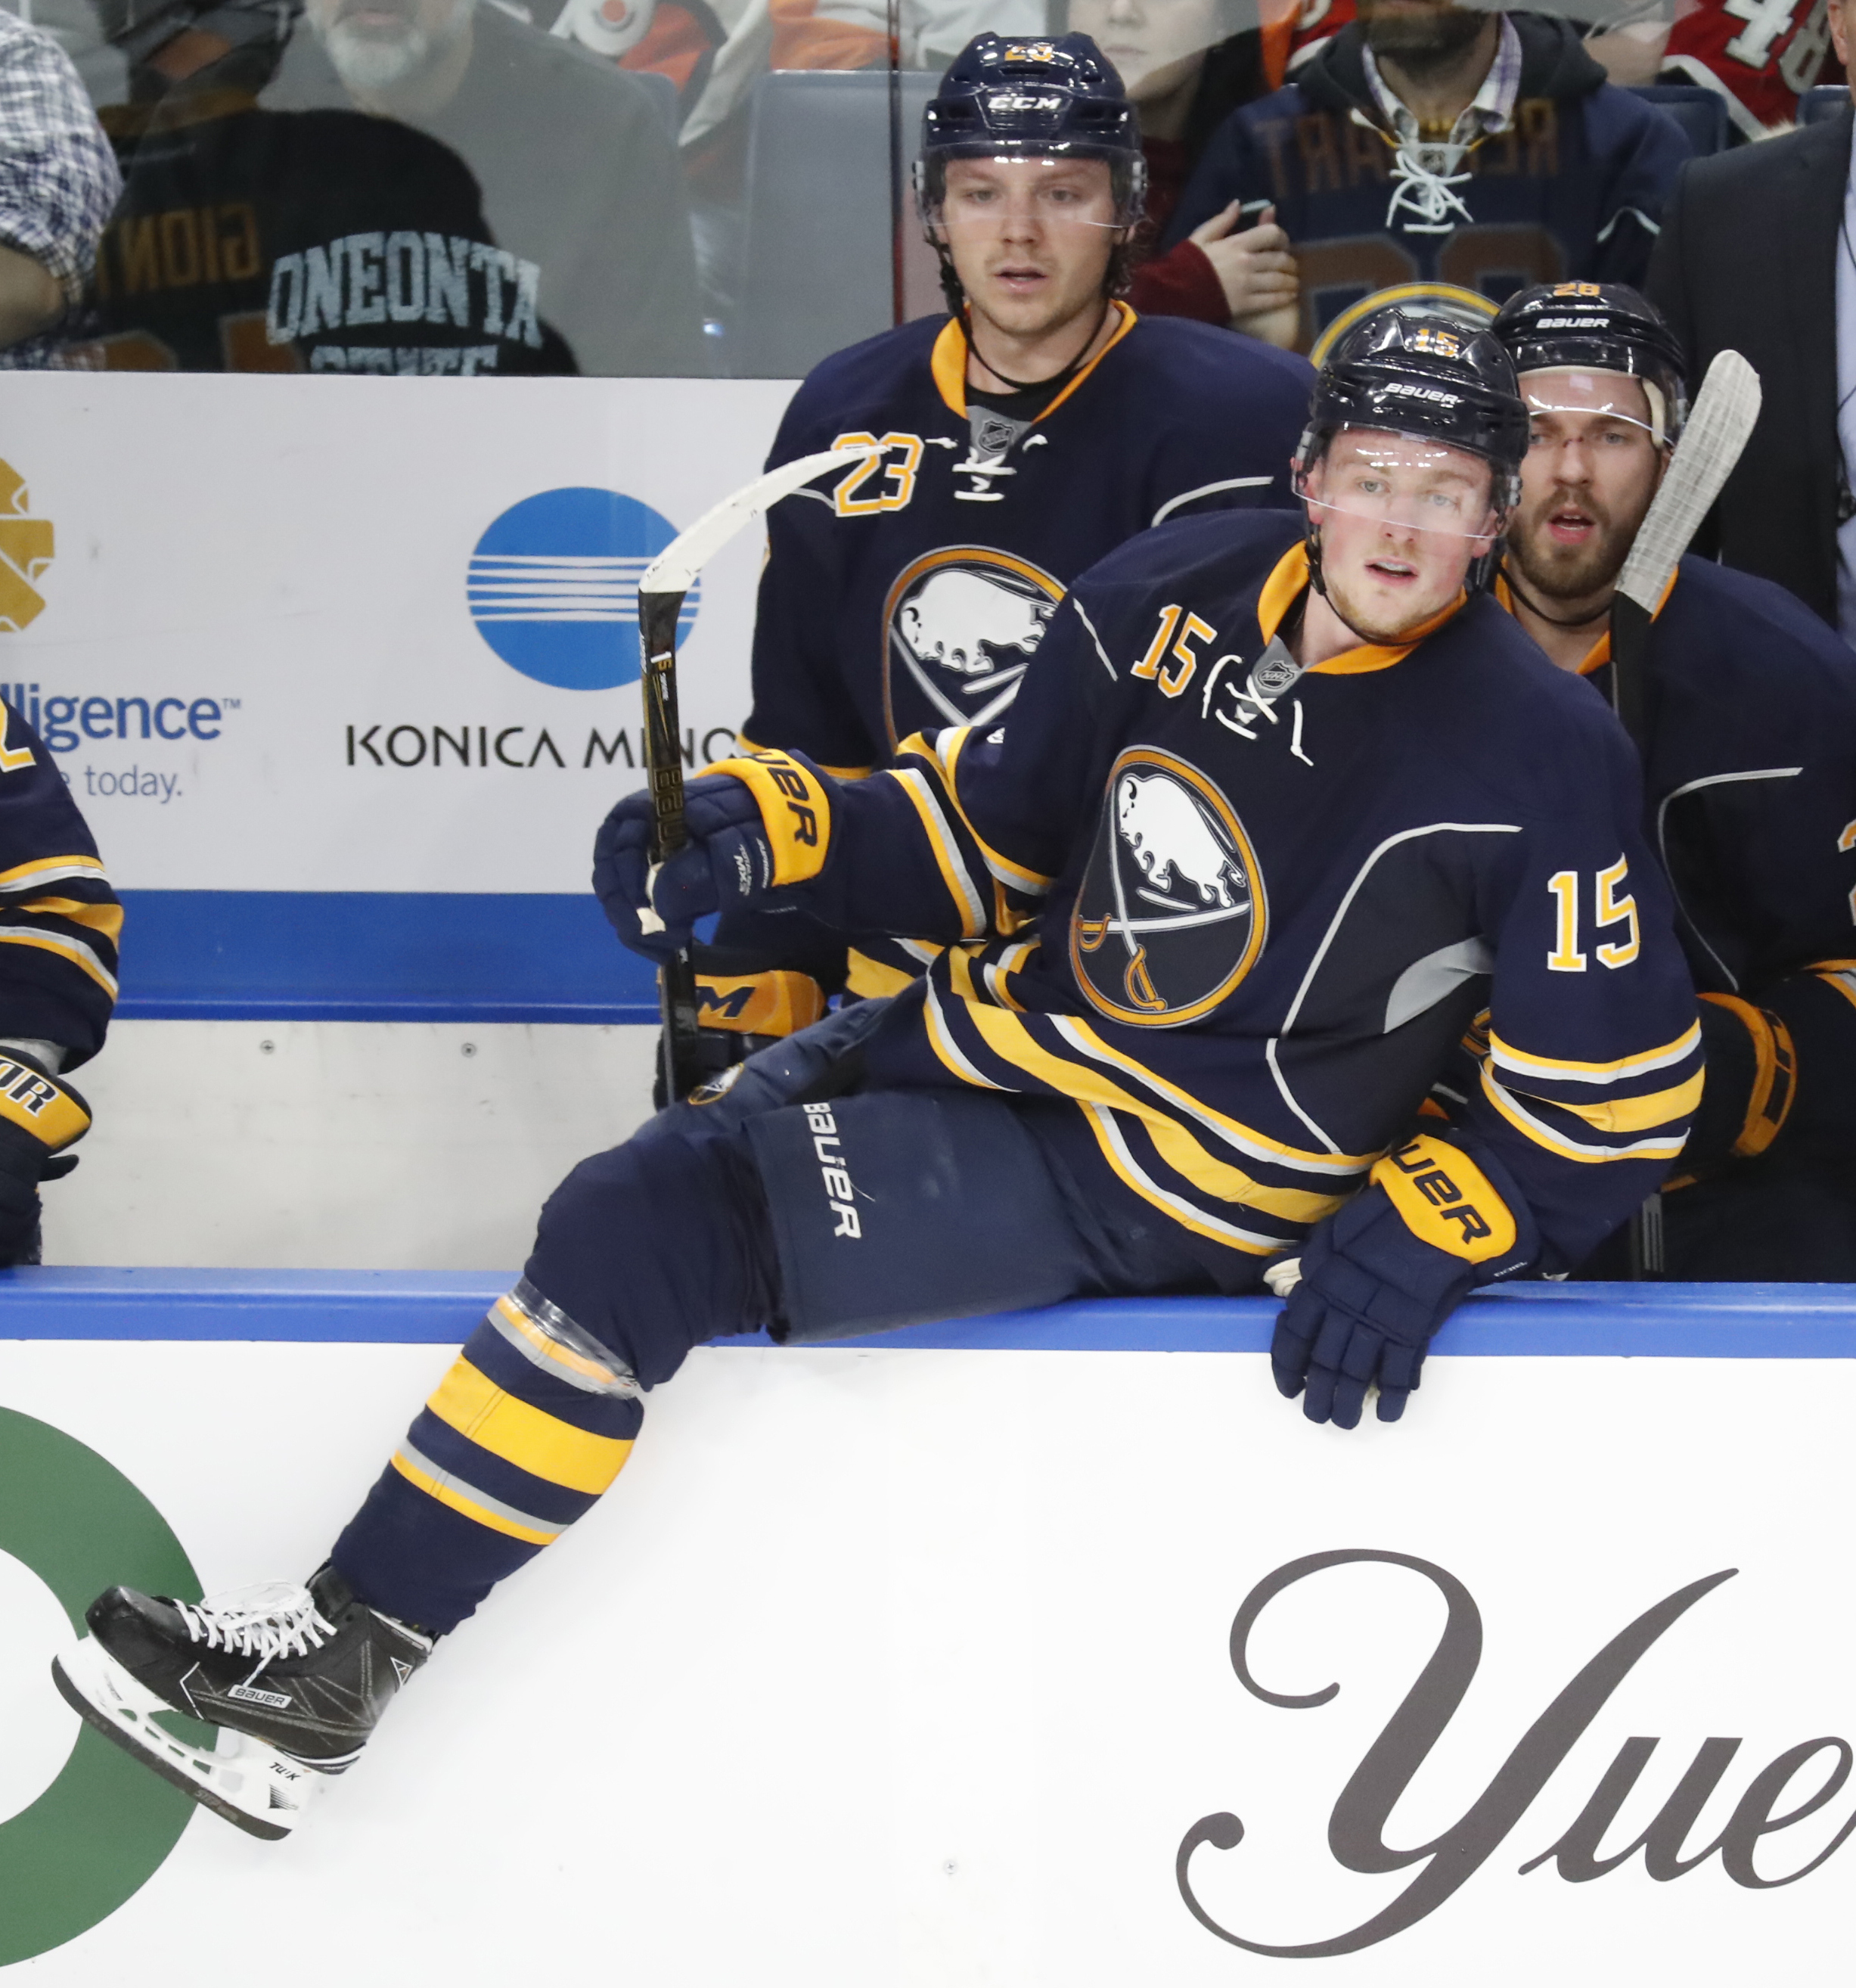 Jack Eichel feels coach Phil Housley's game plan fits his abilities. (Harry Scull Jr./Buffalo News file photo)